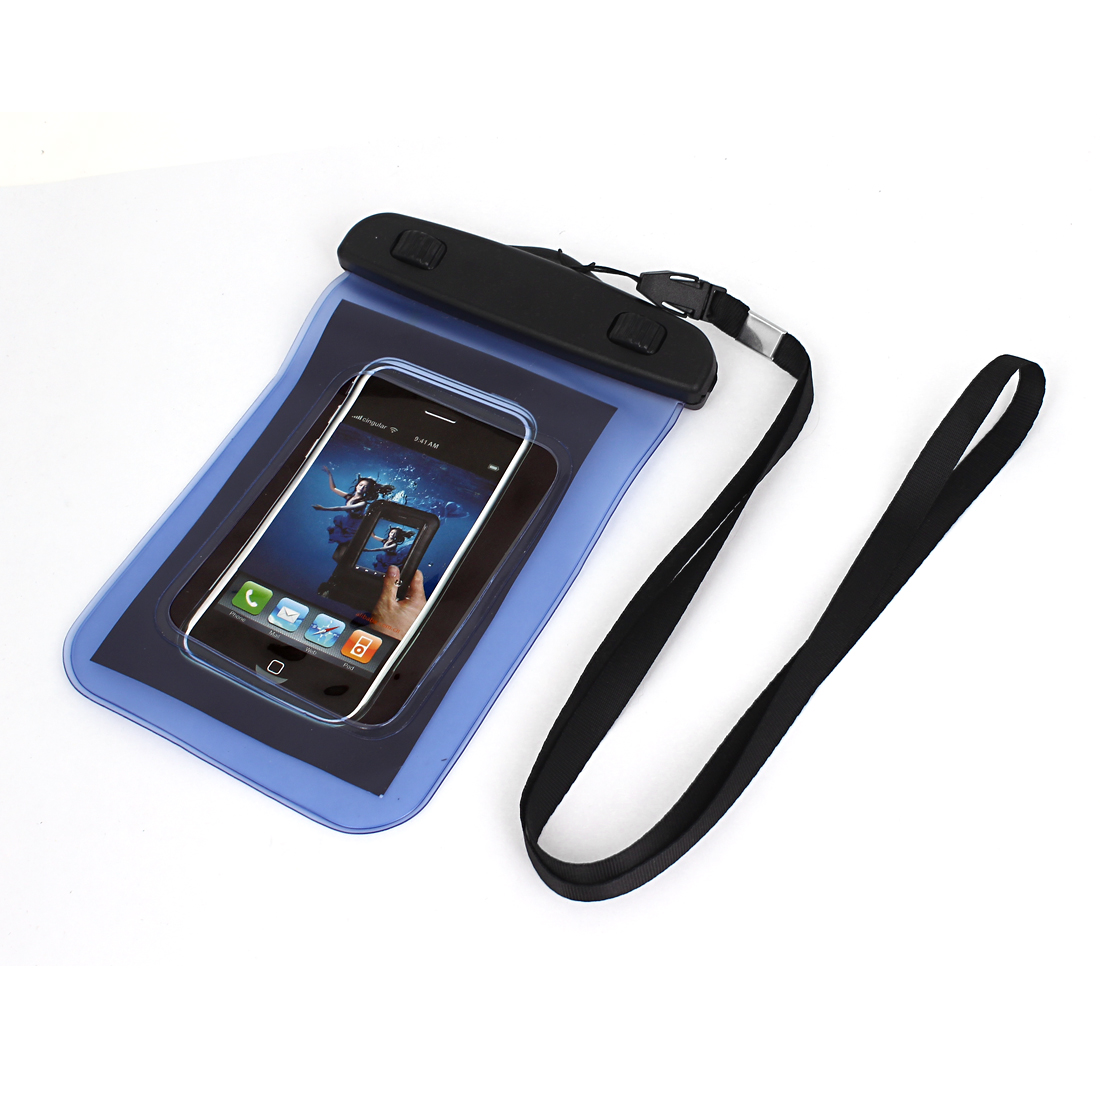 "Waterproof Case Dry Bag Protector Pouch Blue + Strap for 4"" Mobile Phone"